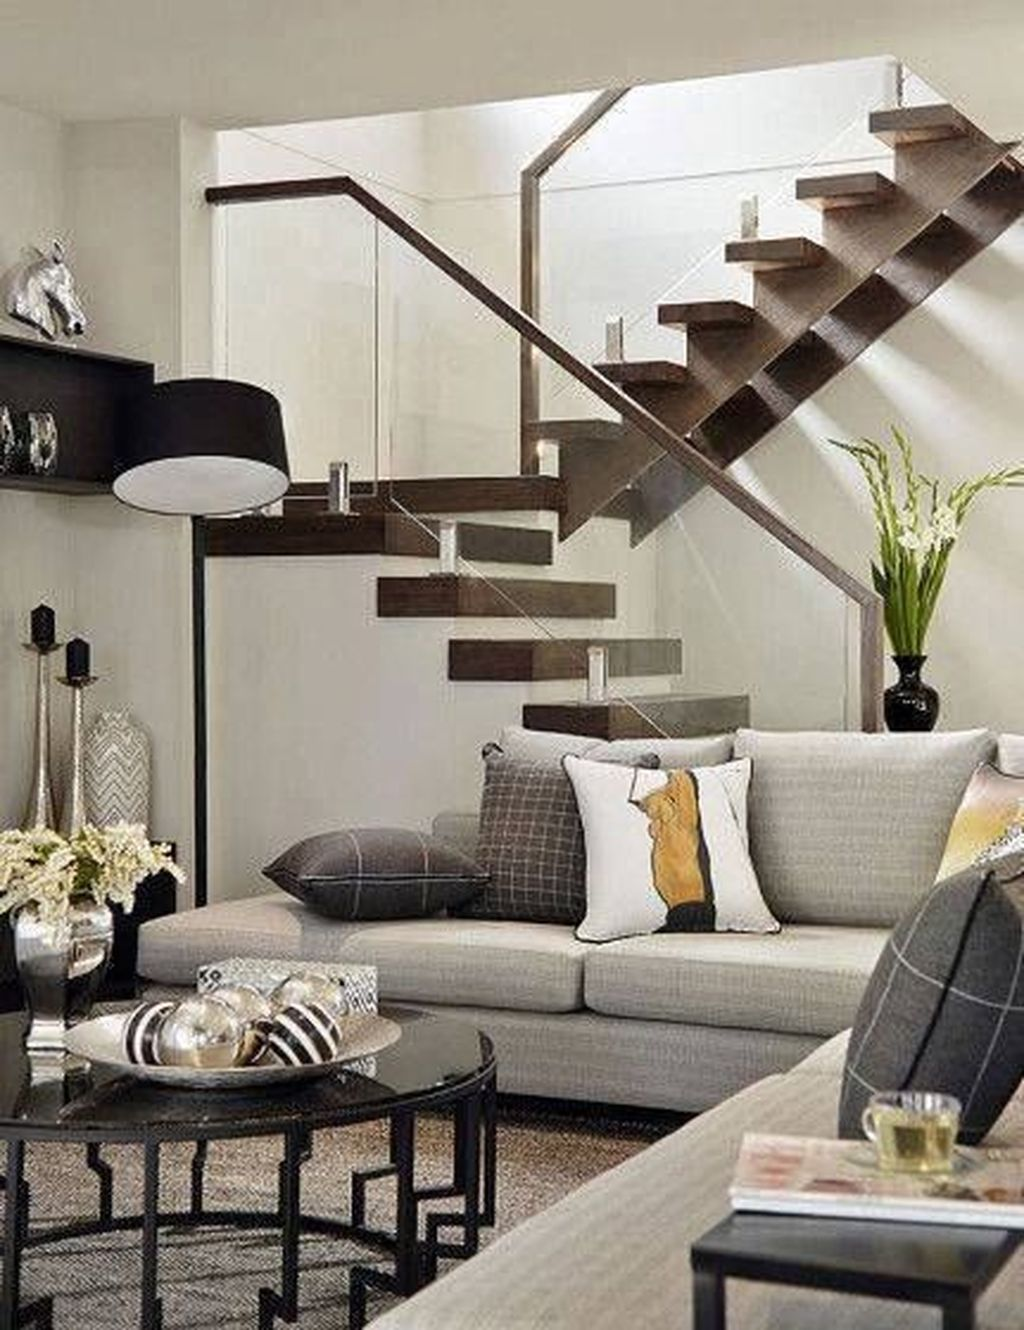 Awesome Modern Glass Railings Design Ideas For Stairs 07